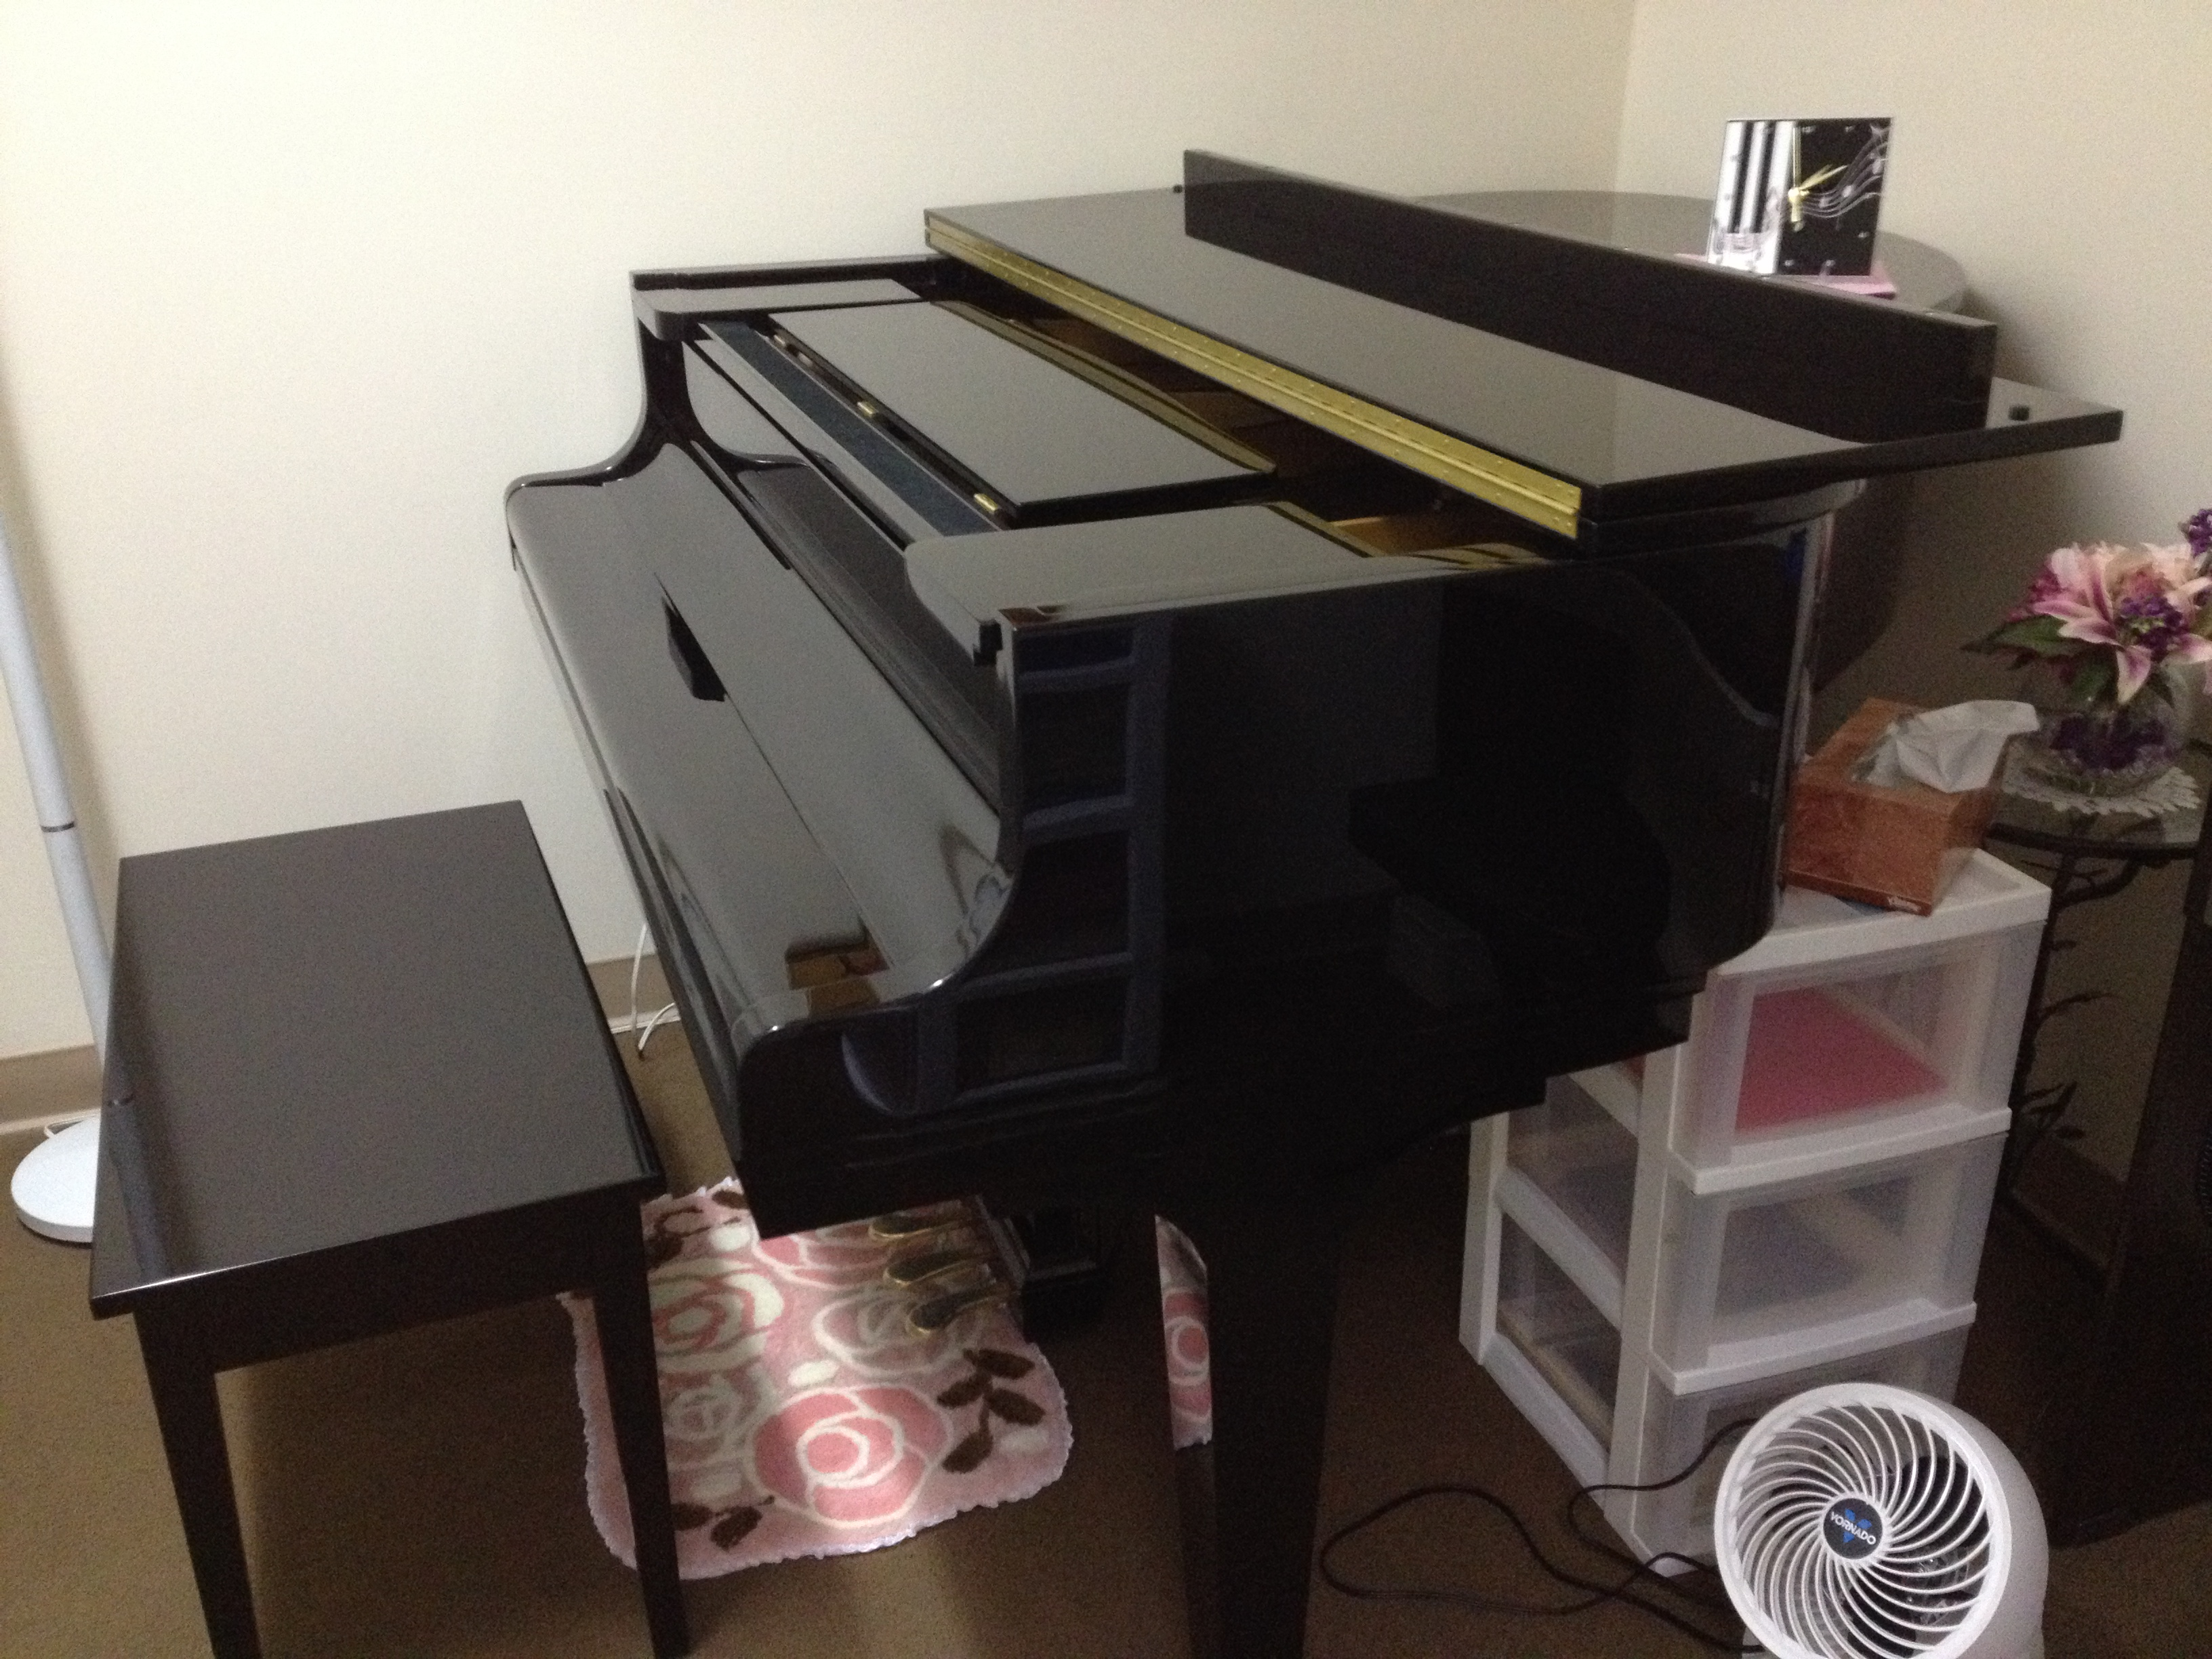 A brand new KAWAI piano for our studio!!